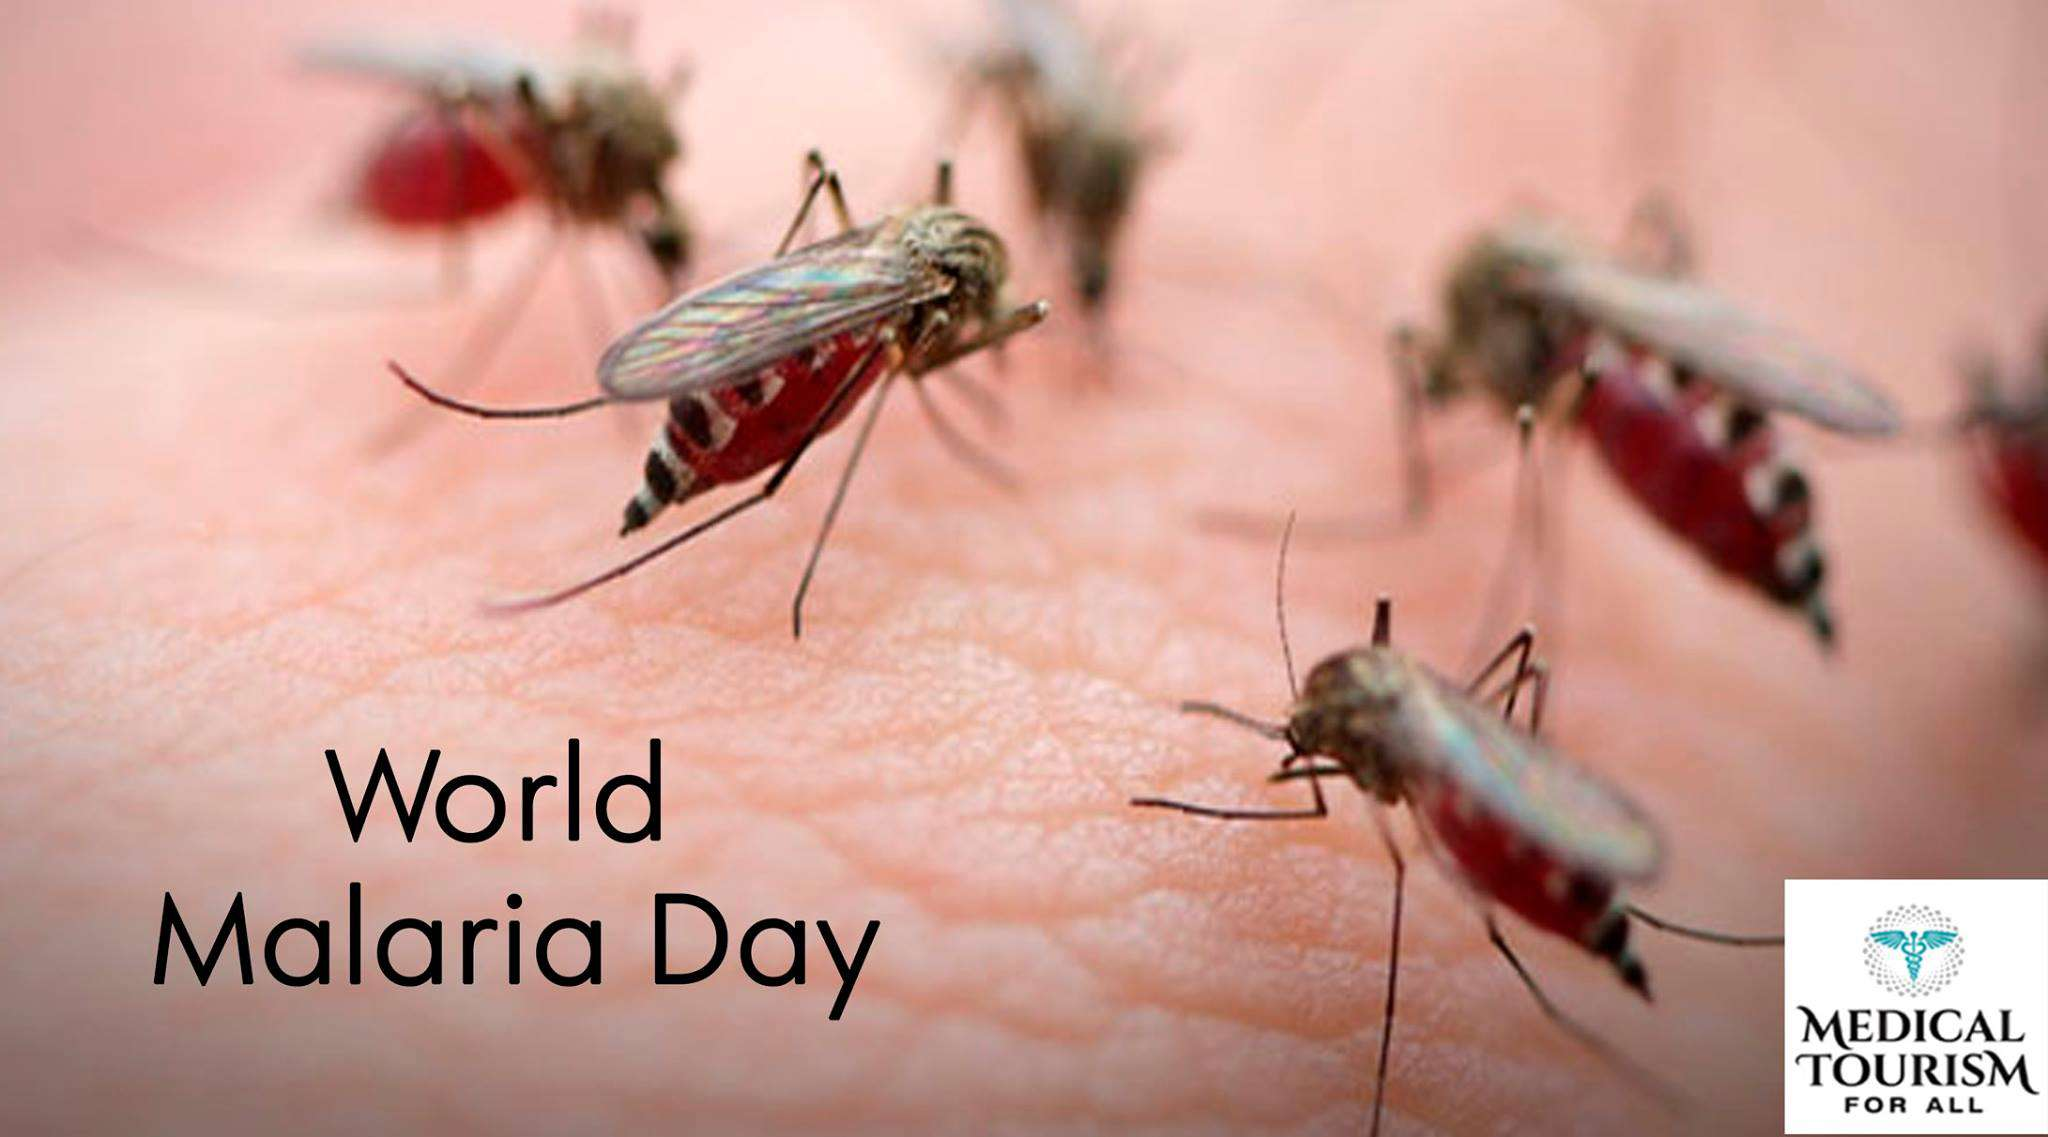 World Malaria Day Wishes Beautiful Image